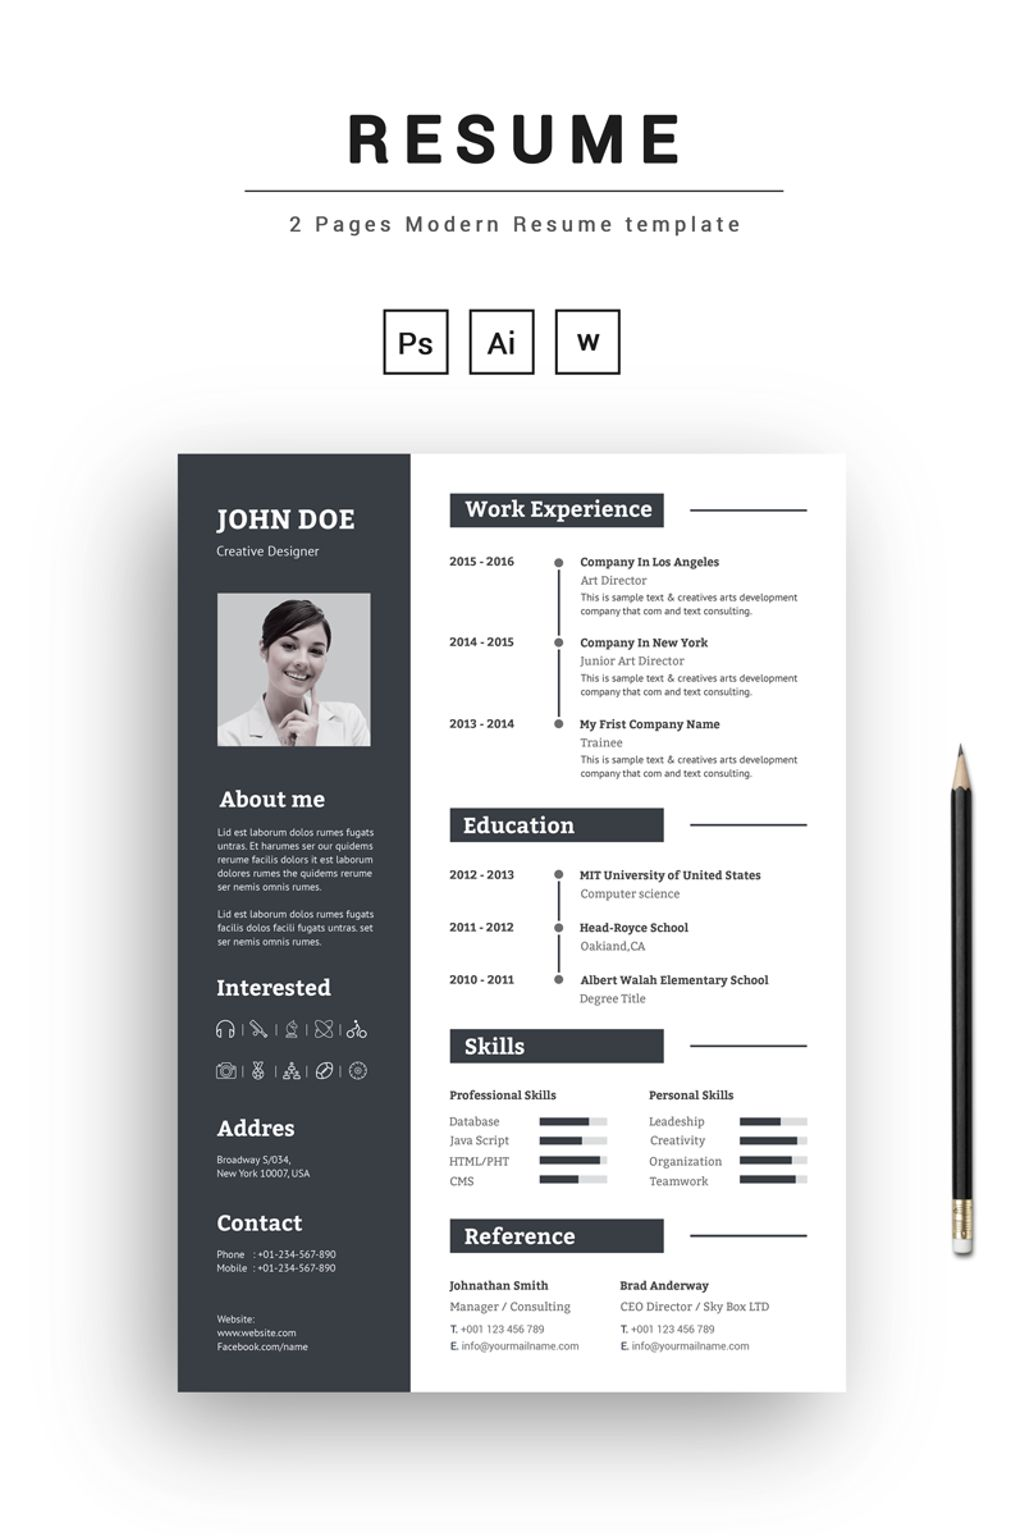 2 pages modern resume template 67396